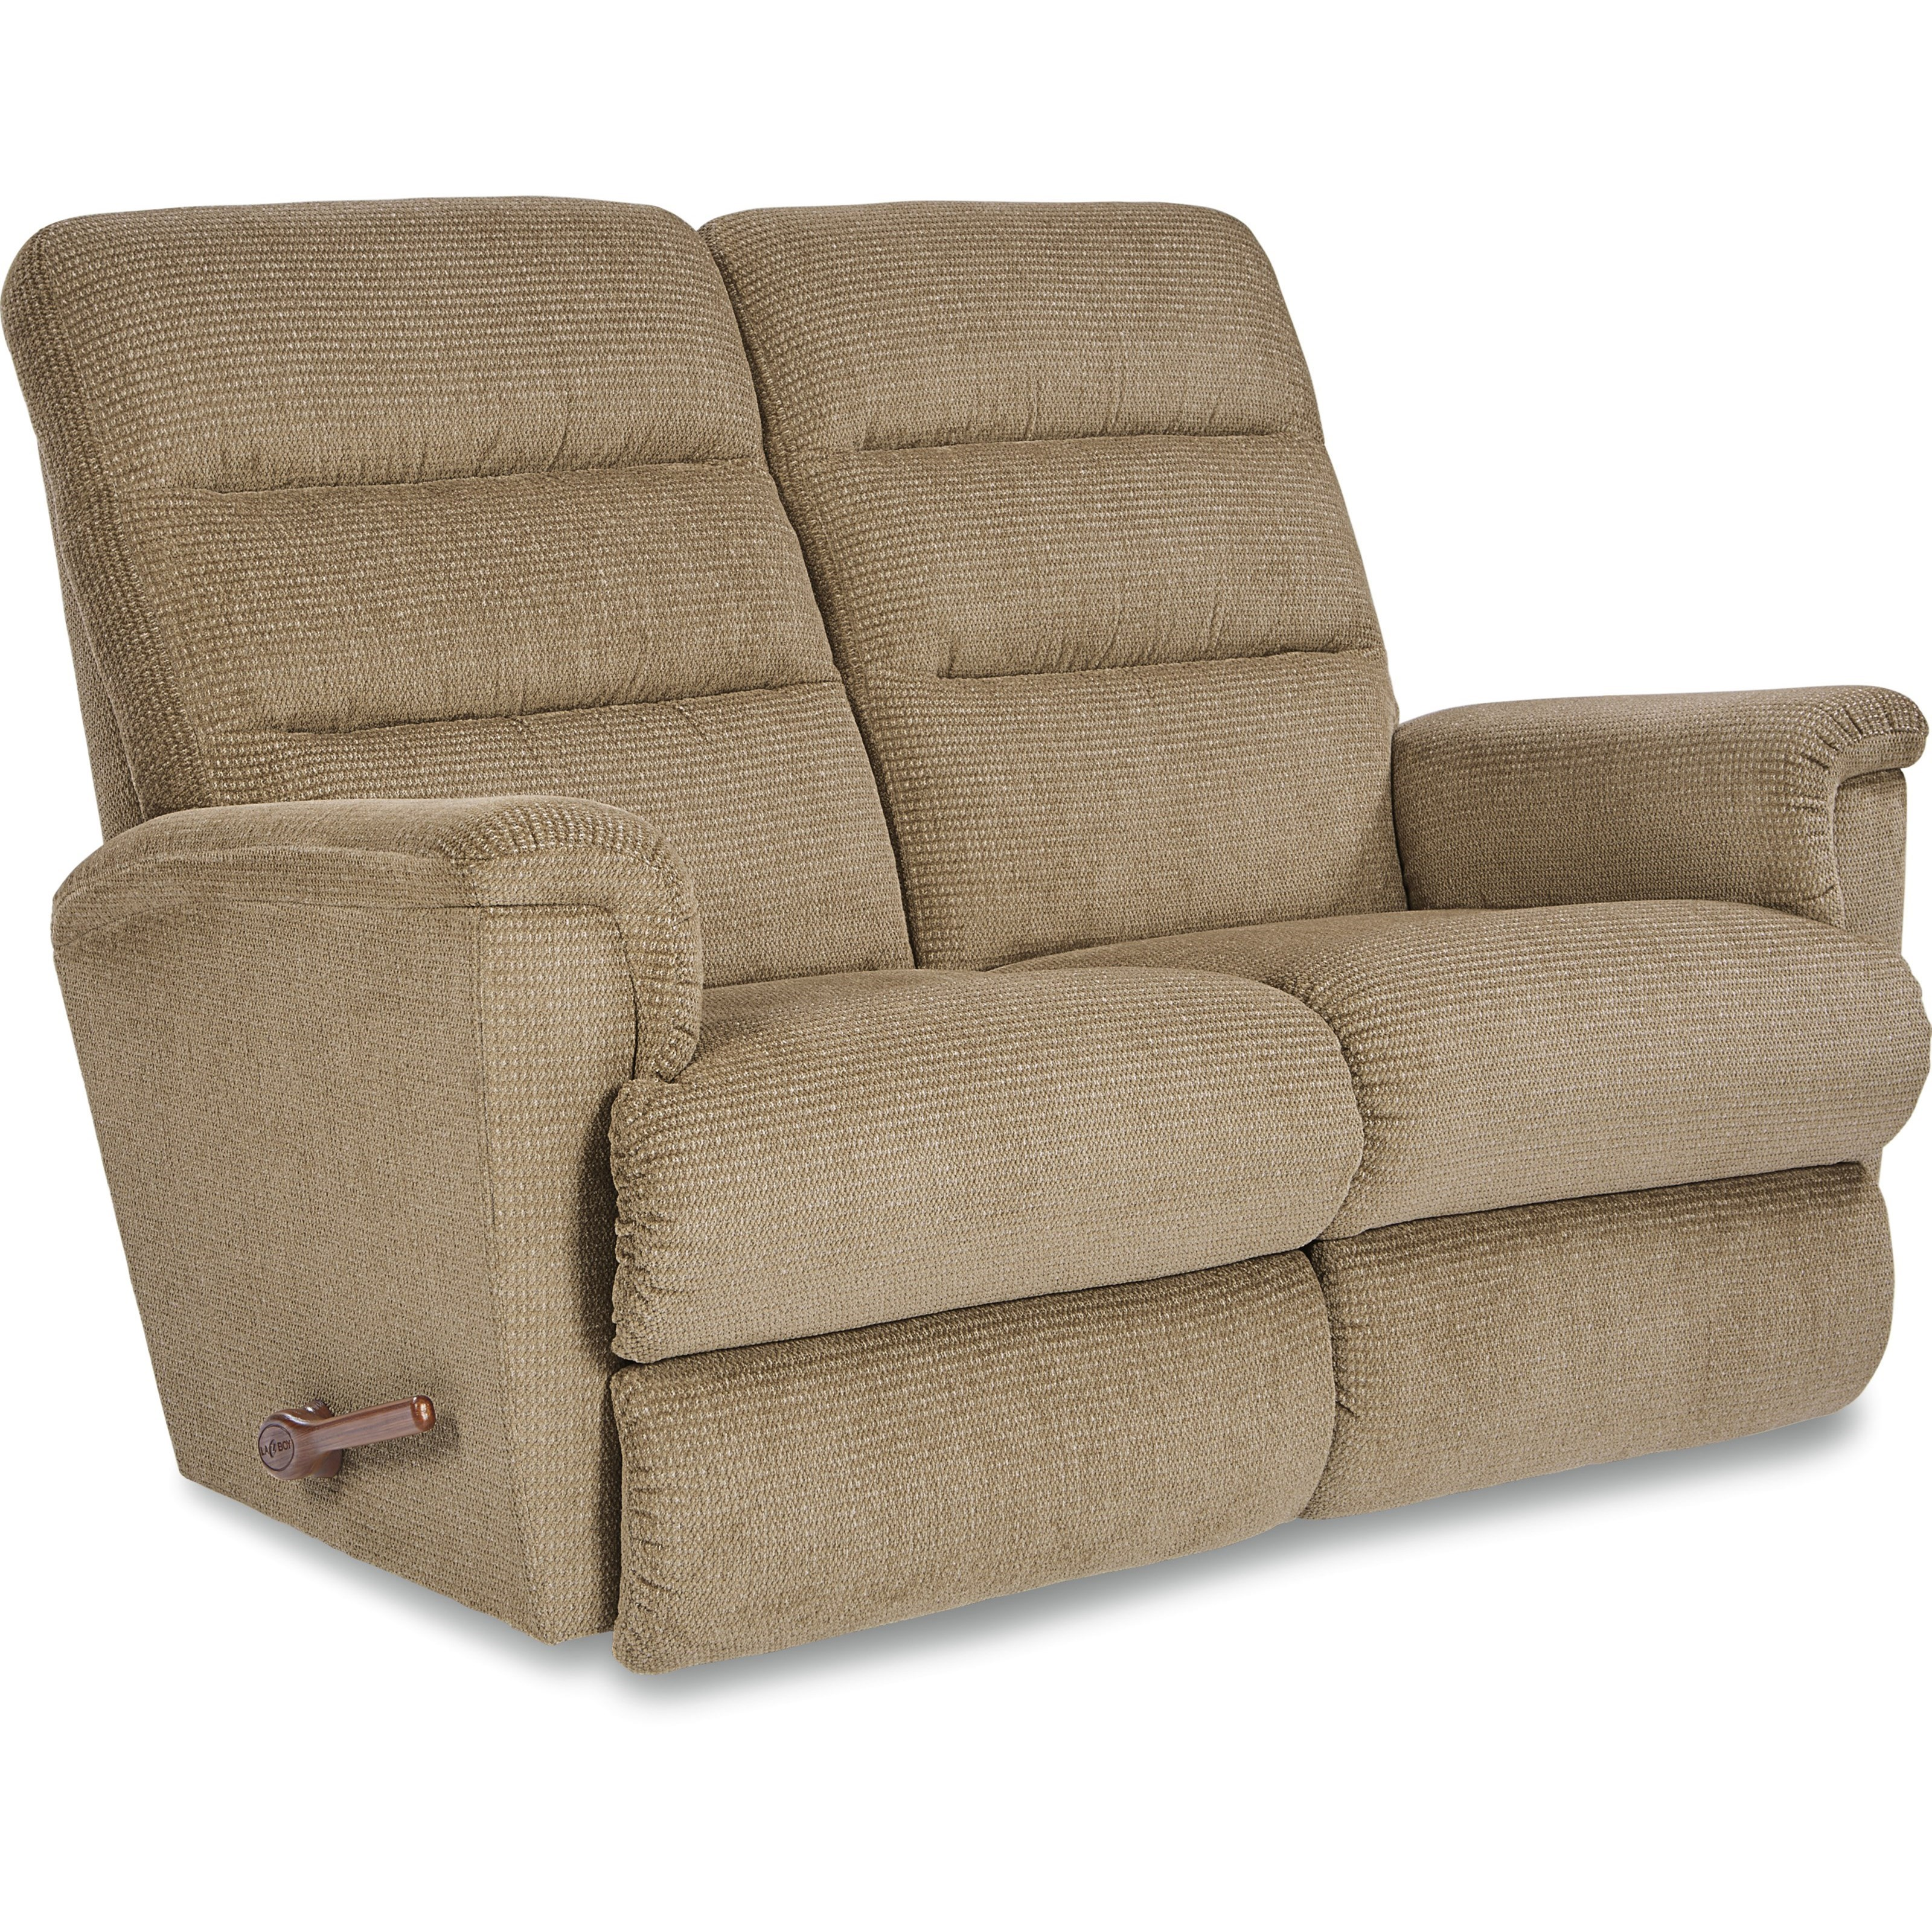 La Z Boy Tripoli Casual Reclining Wall Saver Loveseat